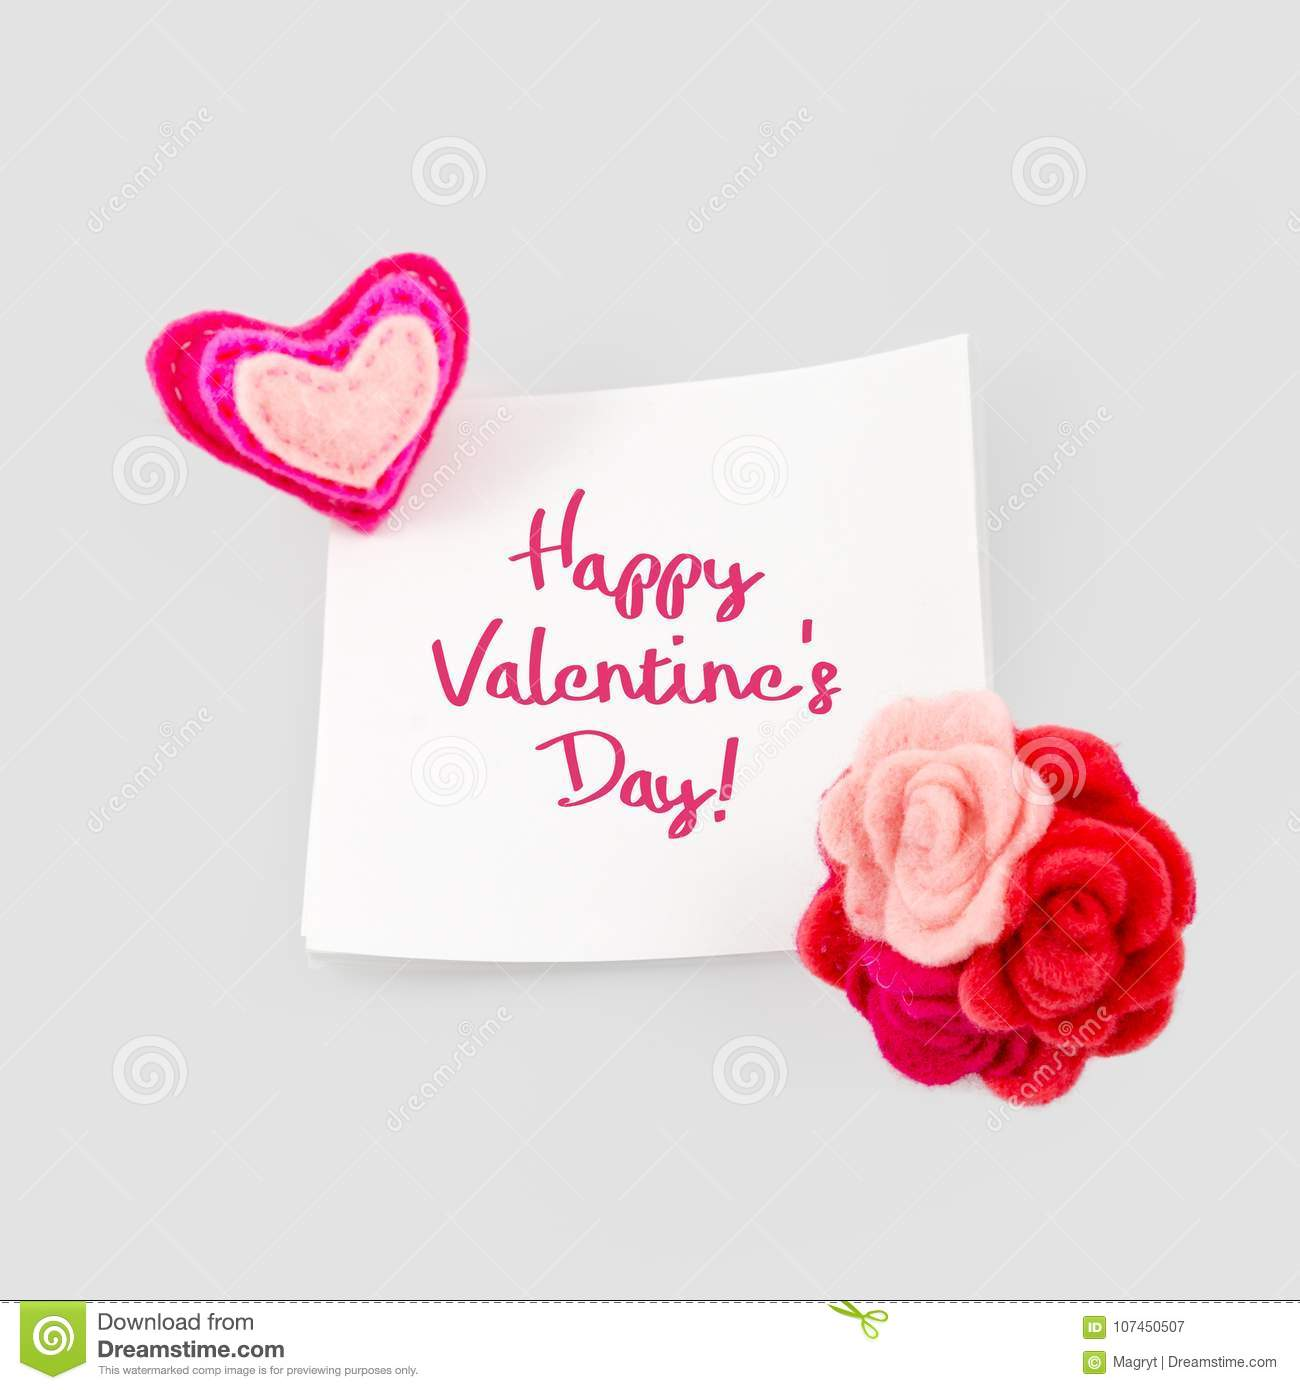 Happy Valentines Day Greeting Card Heart And Love Message On Stick